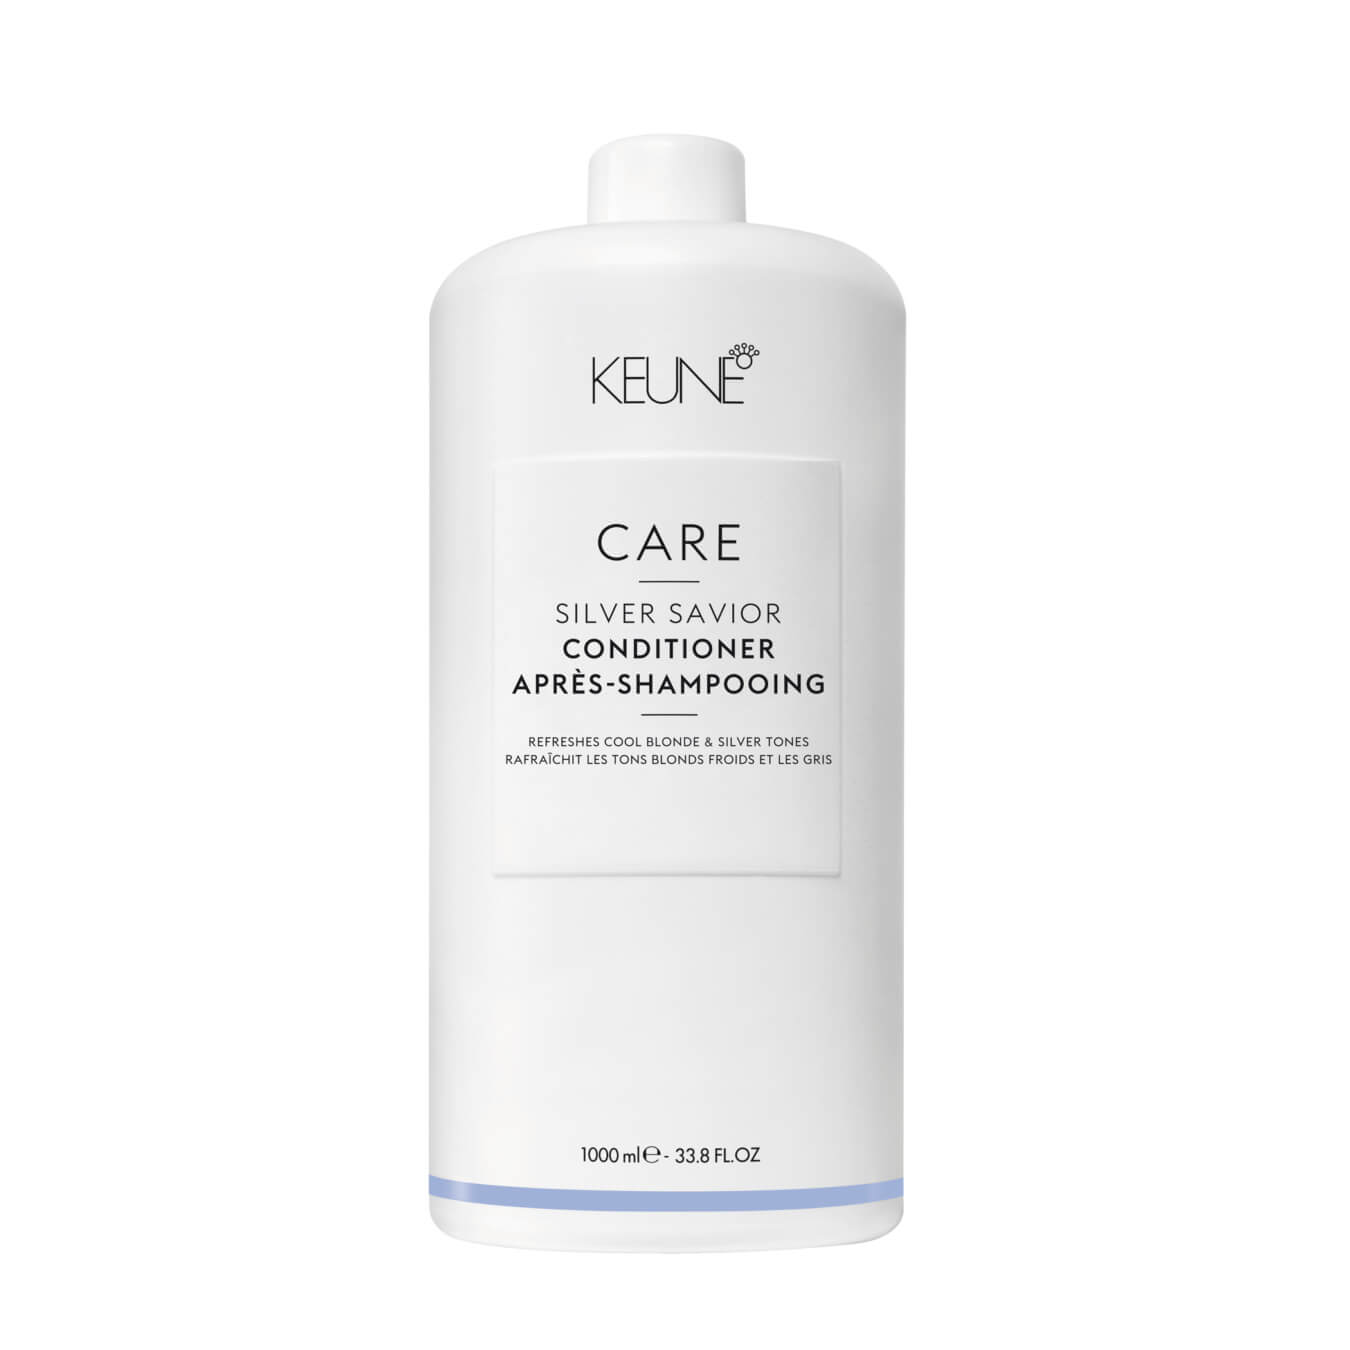 Koop Keune Care Silver Savior Conditioner 1000ml